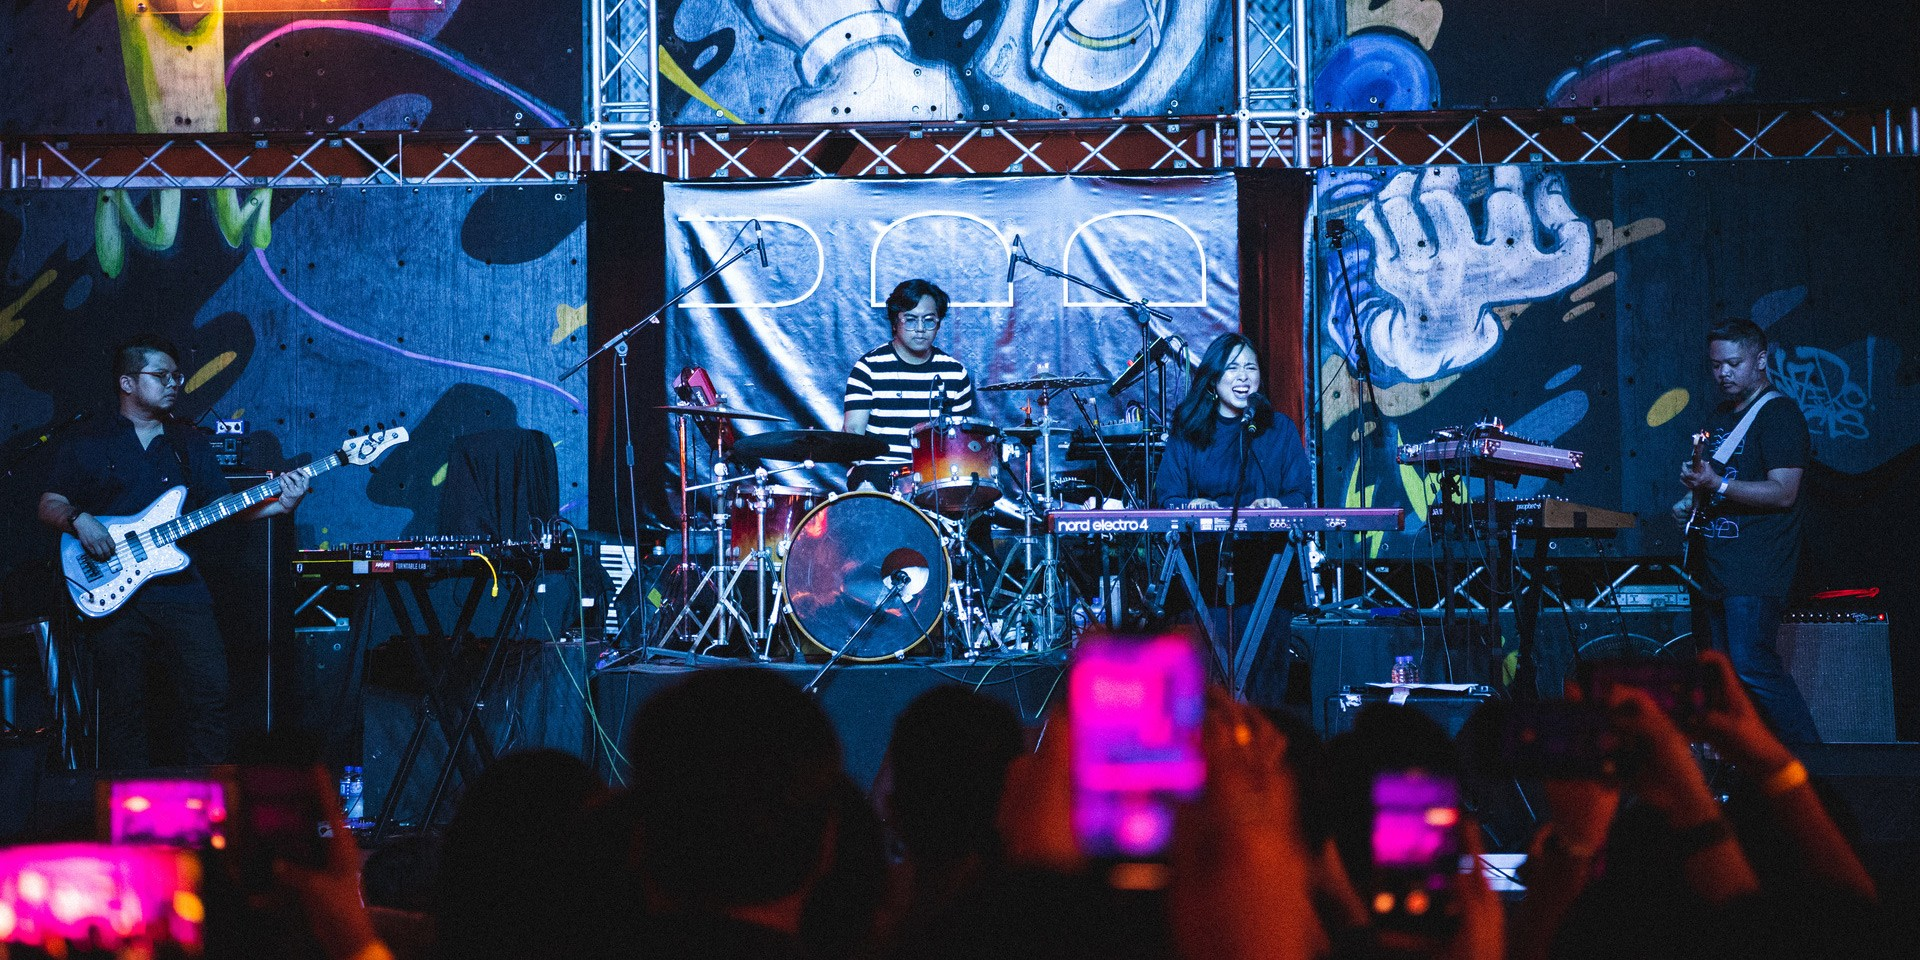 UDD, Giniling Festival, AOUI, and more to perform at Escolta Block Festival 2019